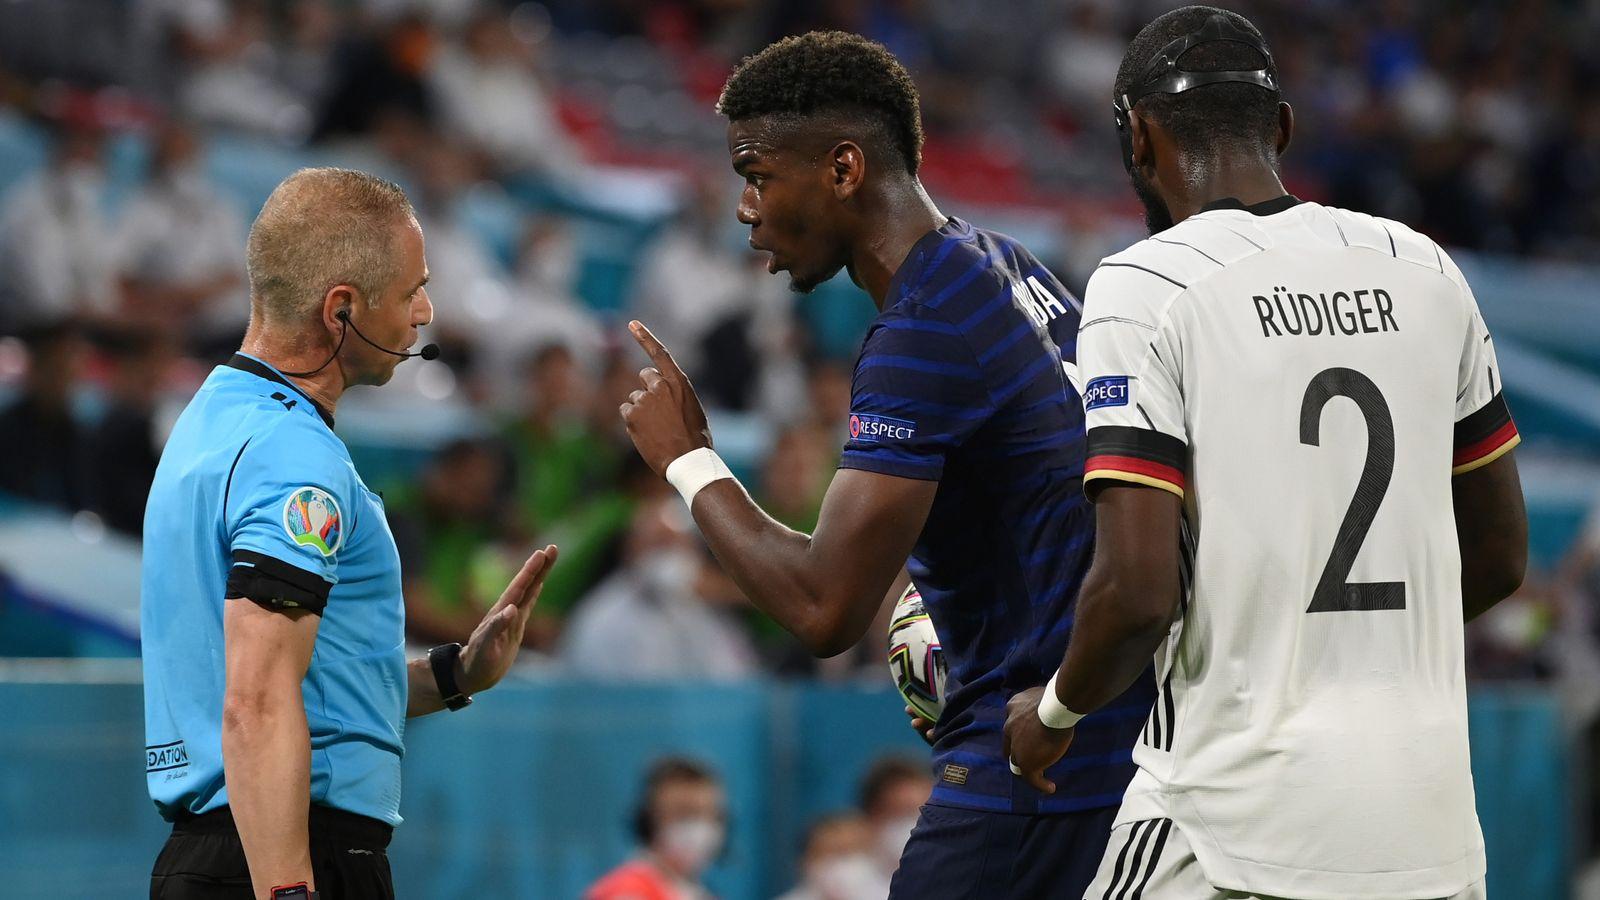 Pogba: I don't want him to be suspended.